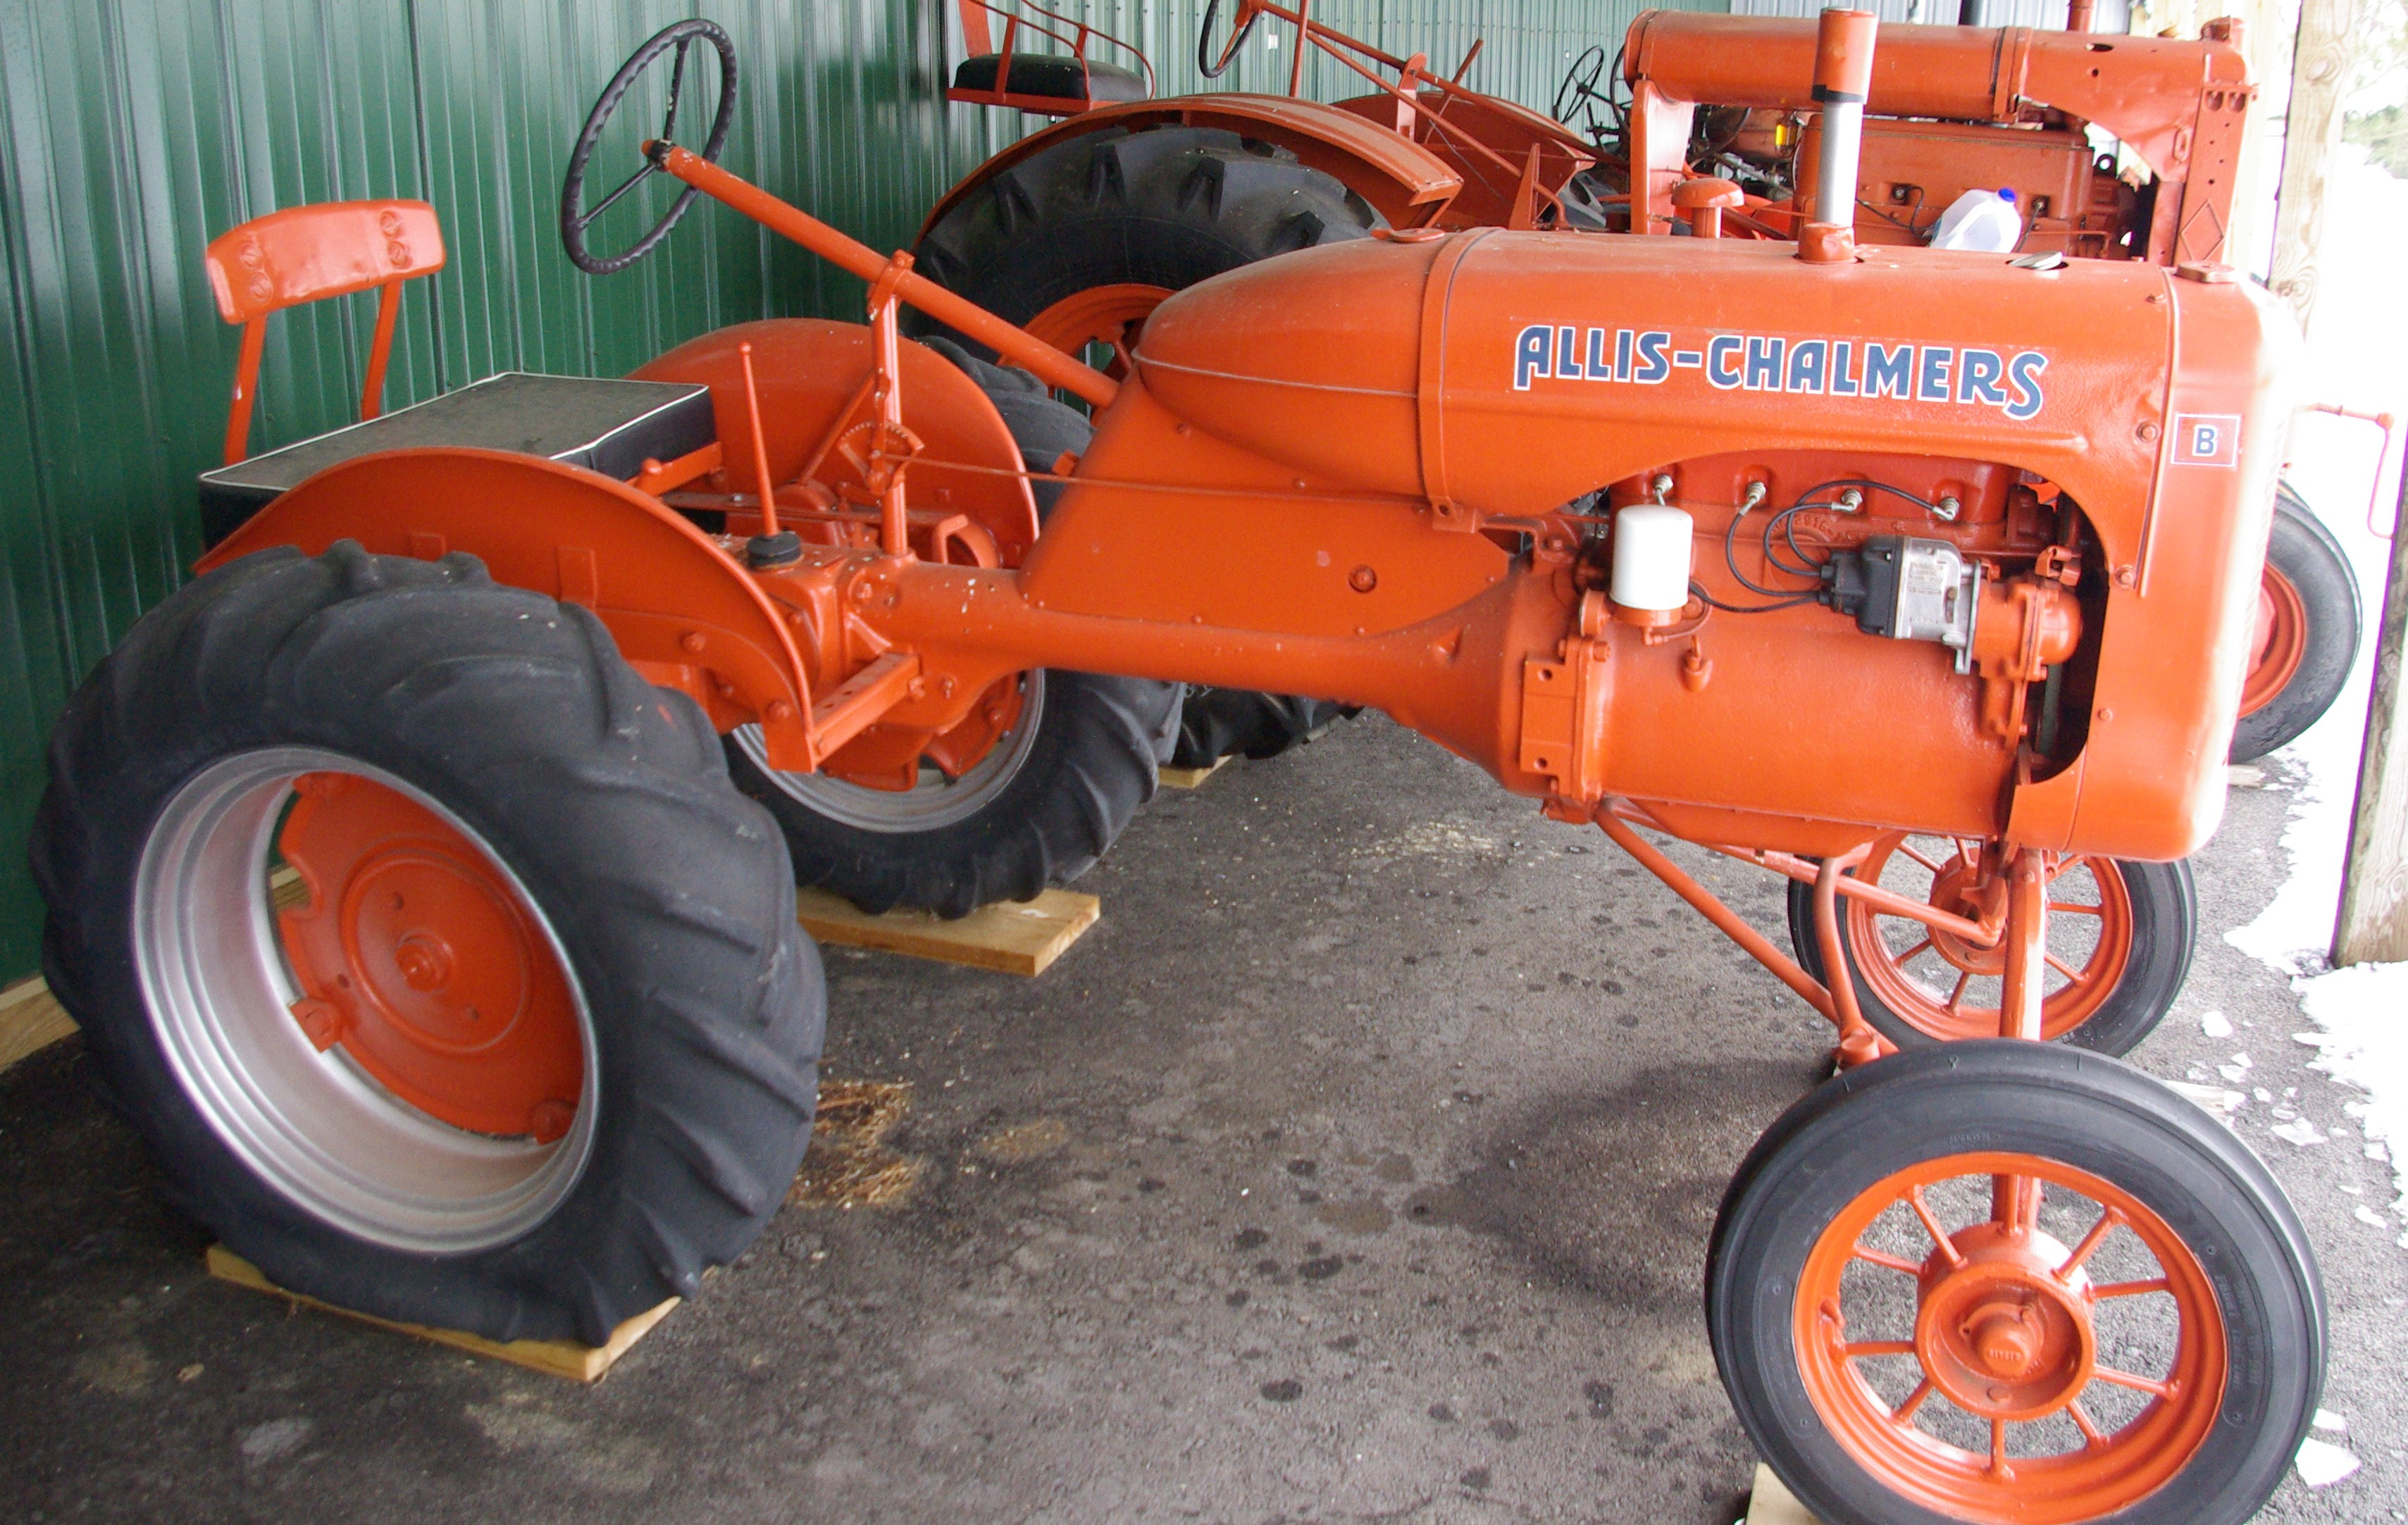 Allis Chalmers B Amazing Photo On Openiso Org Collection Of Cars Allis Chalmers B Download Wallpapers